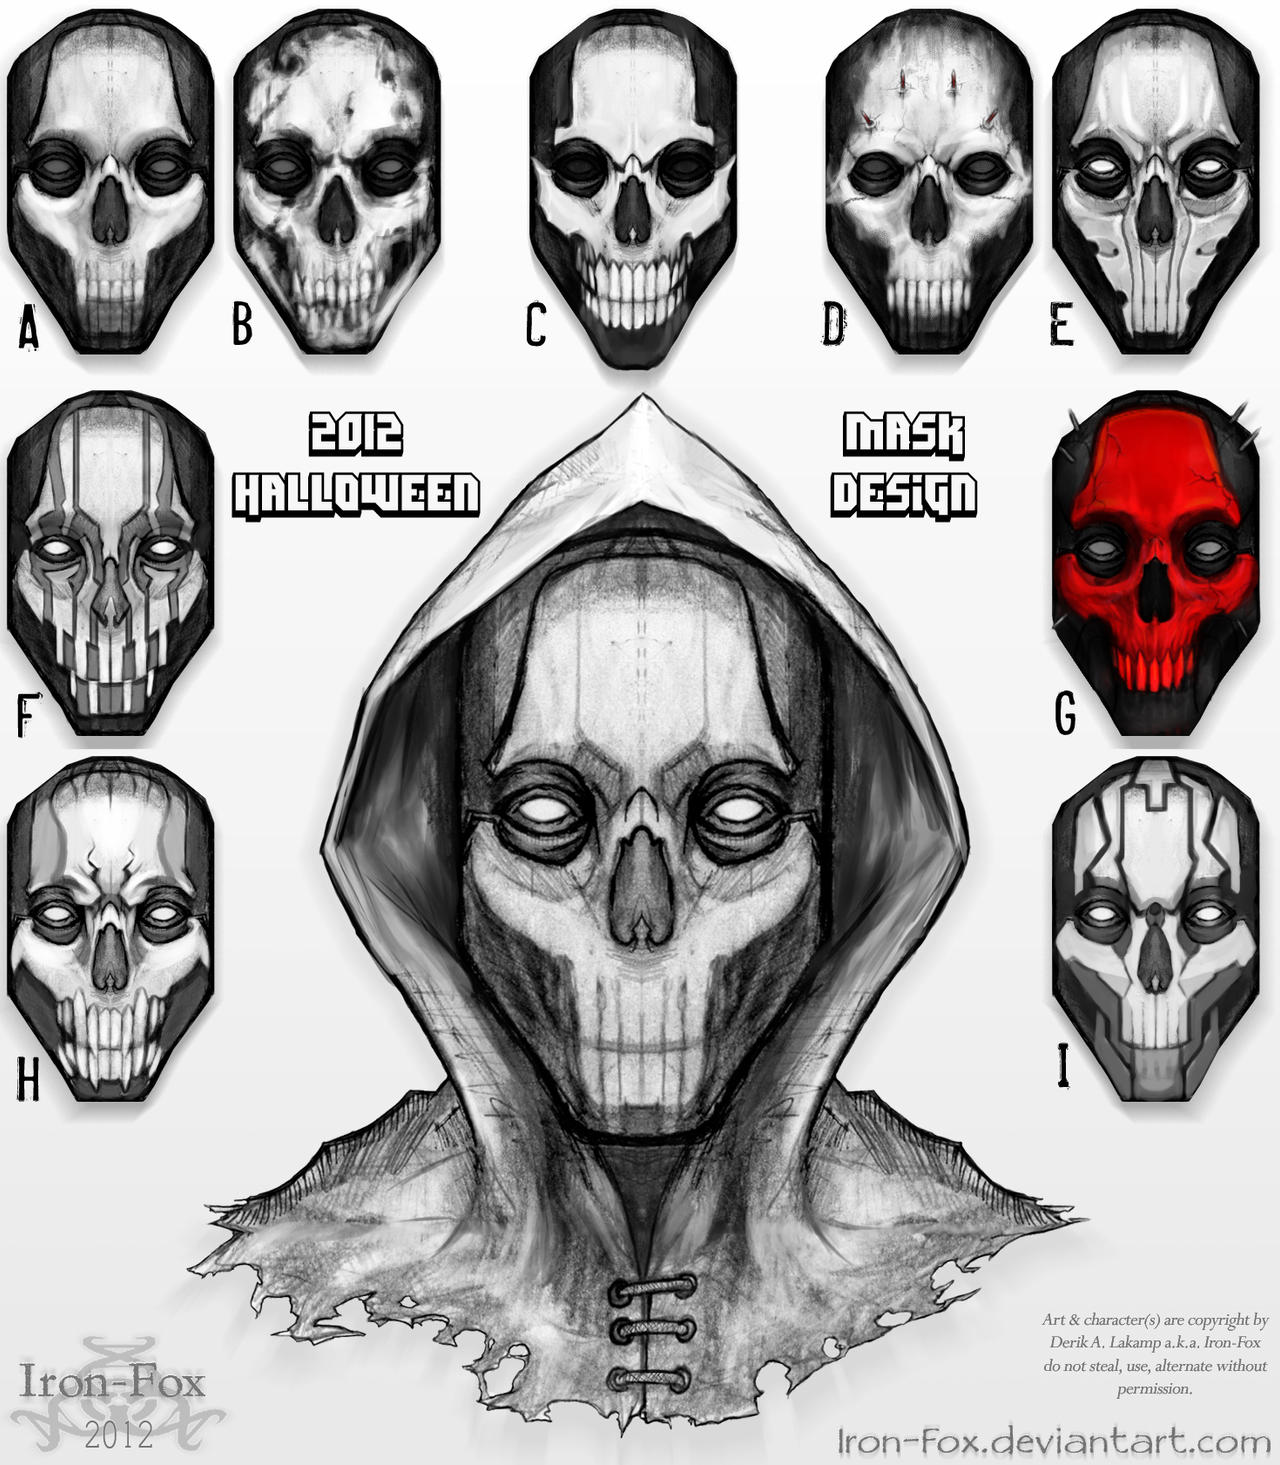 2012 Halloween Mask Design by Iron-Fox on DeviantArt